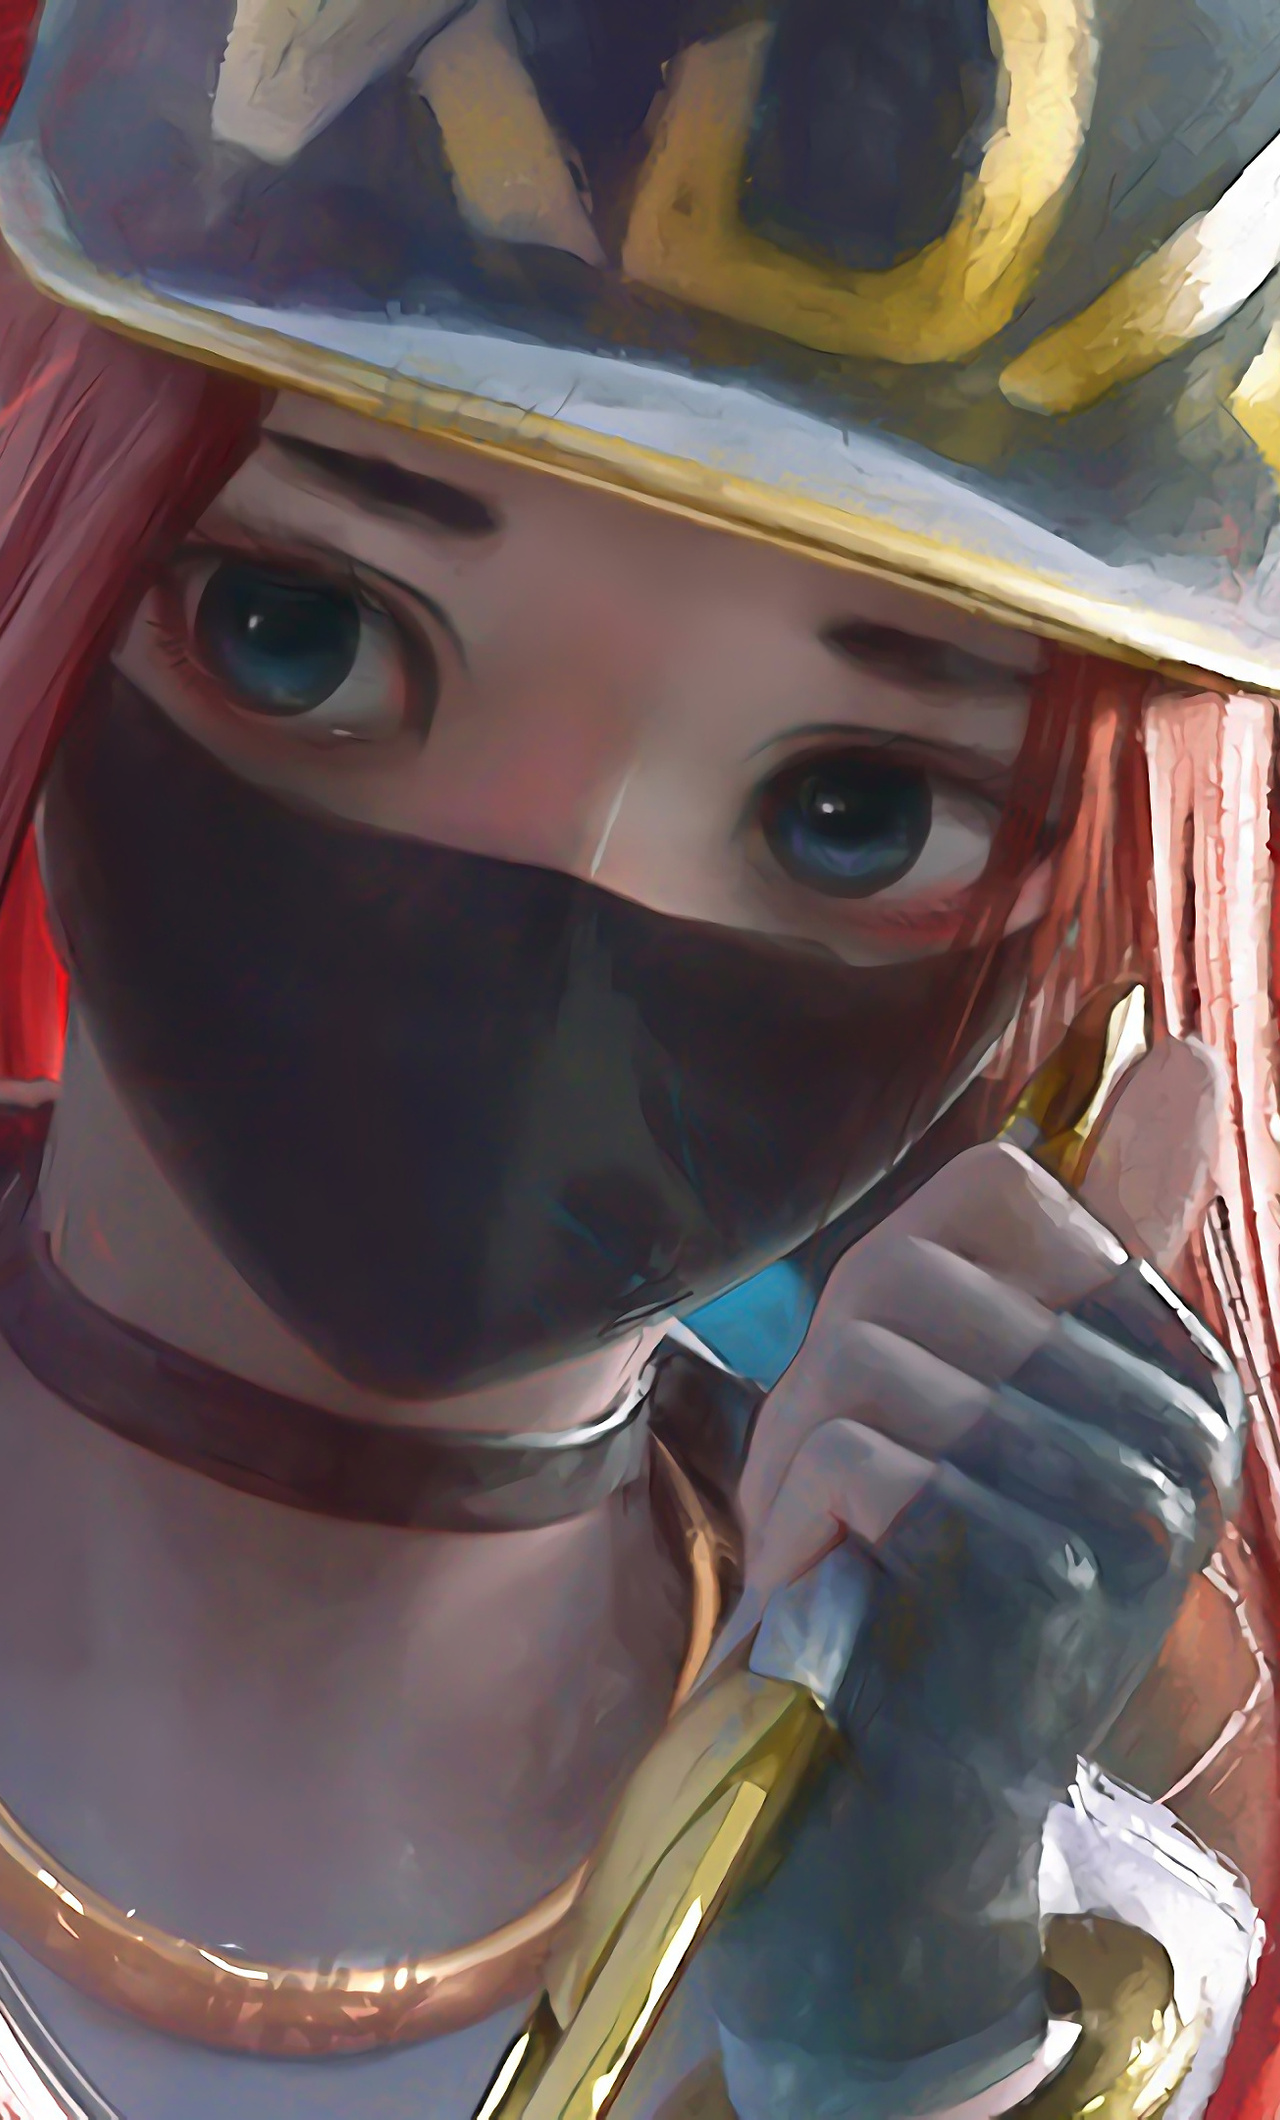 kda-akali-league-of-legends-fantasy-art-4k-t8.jpg